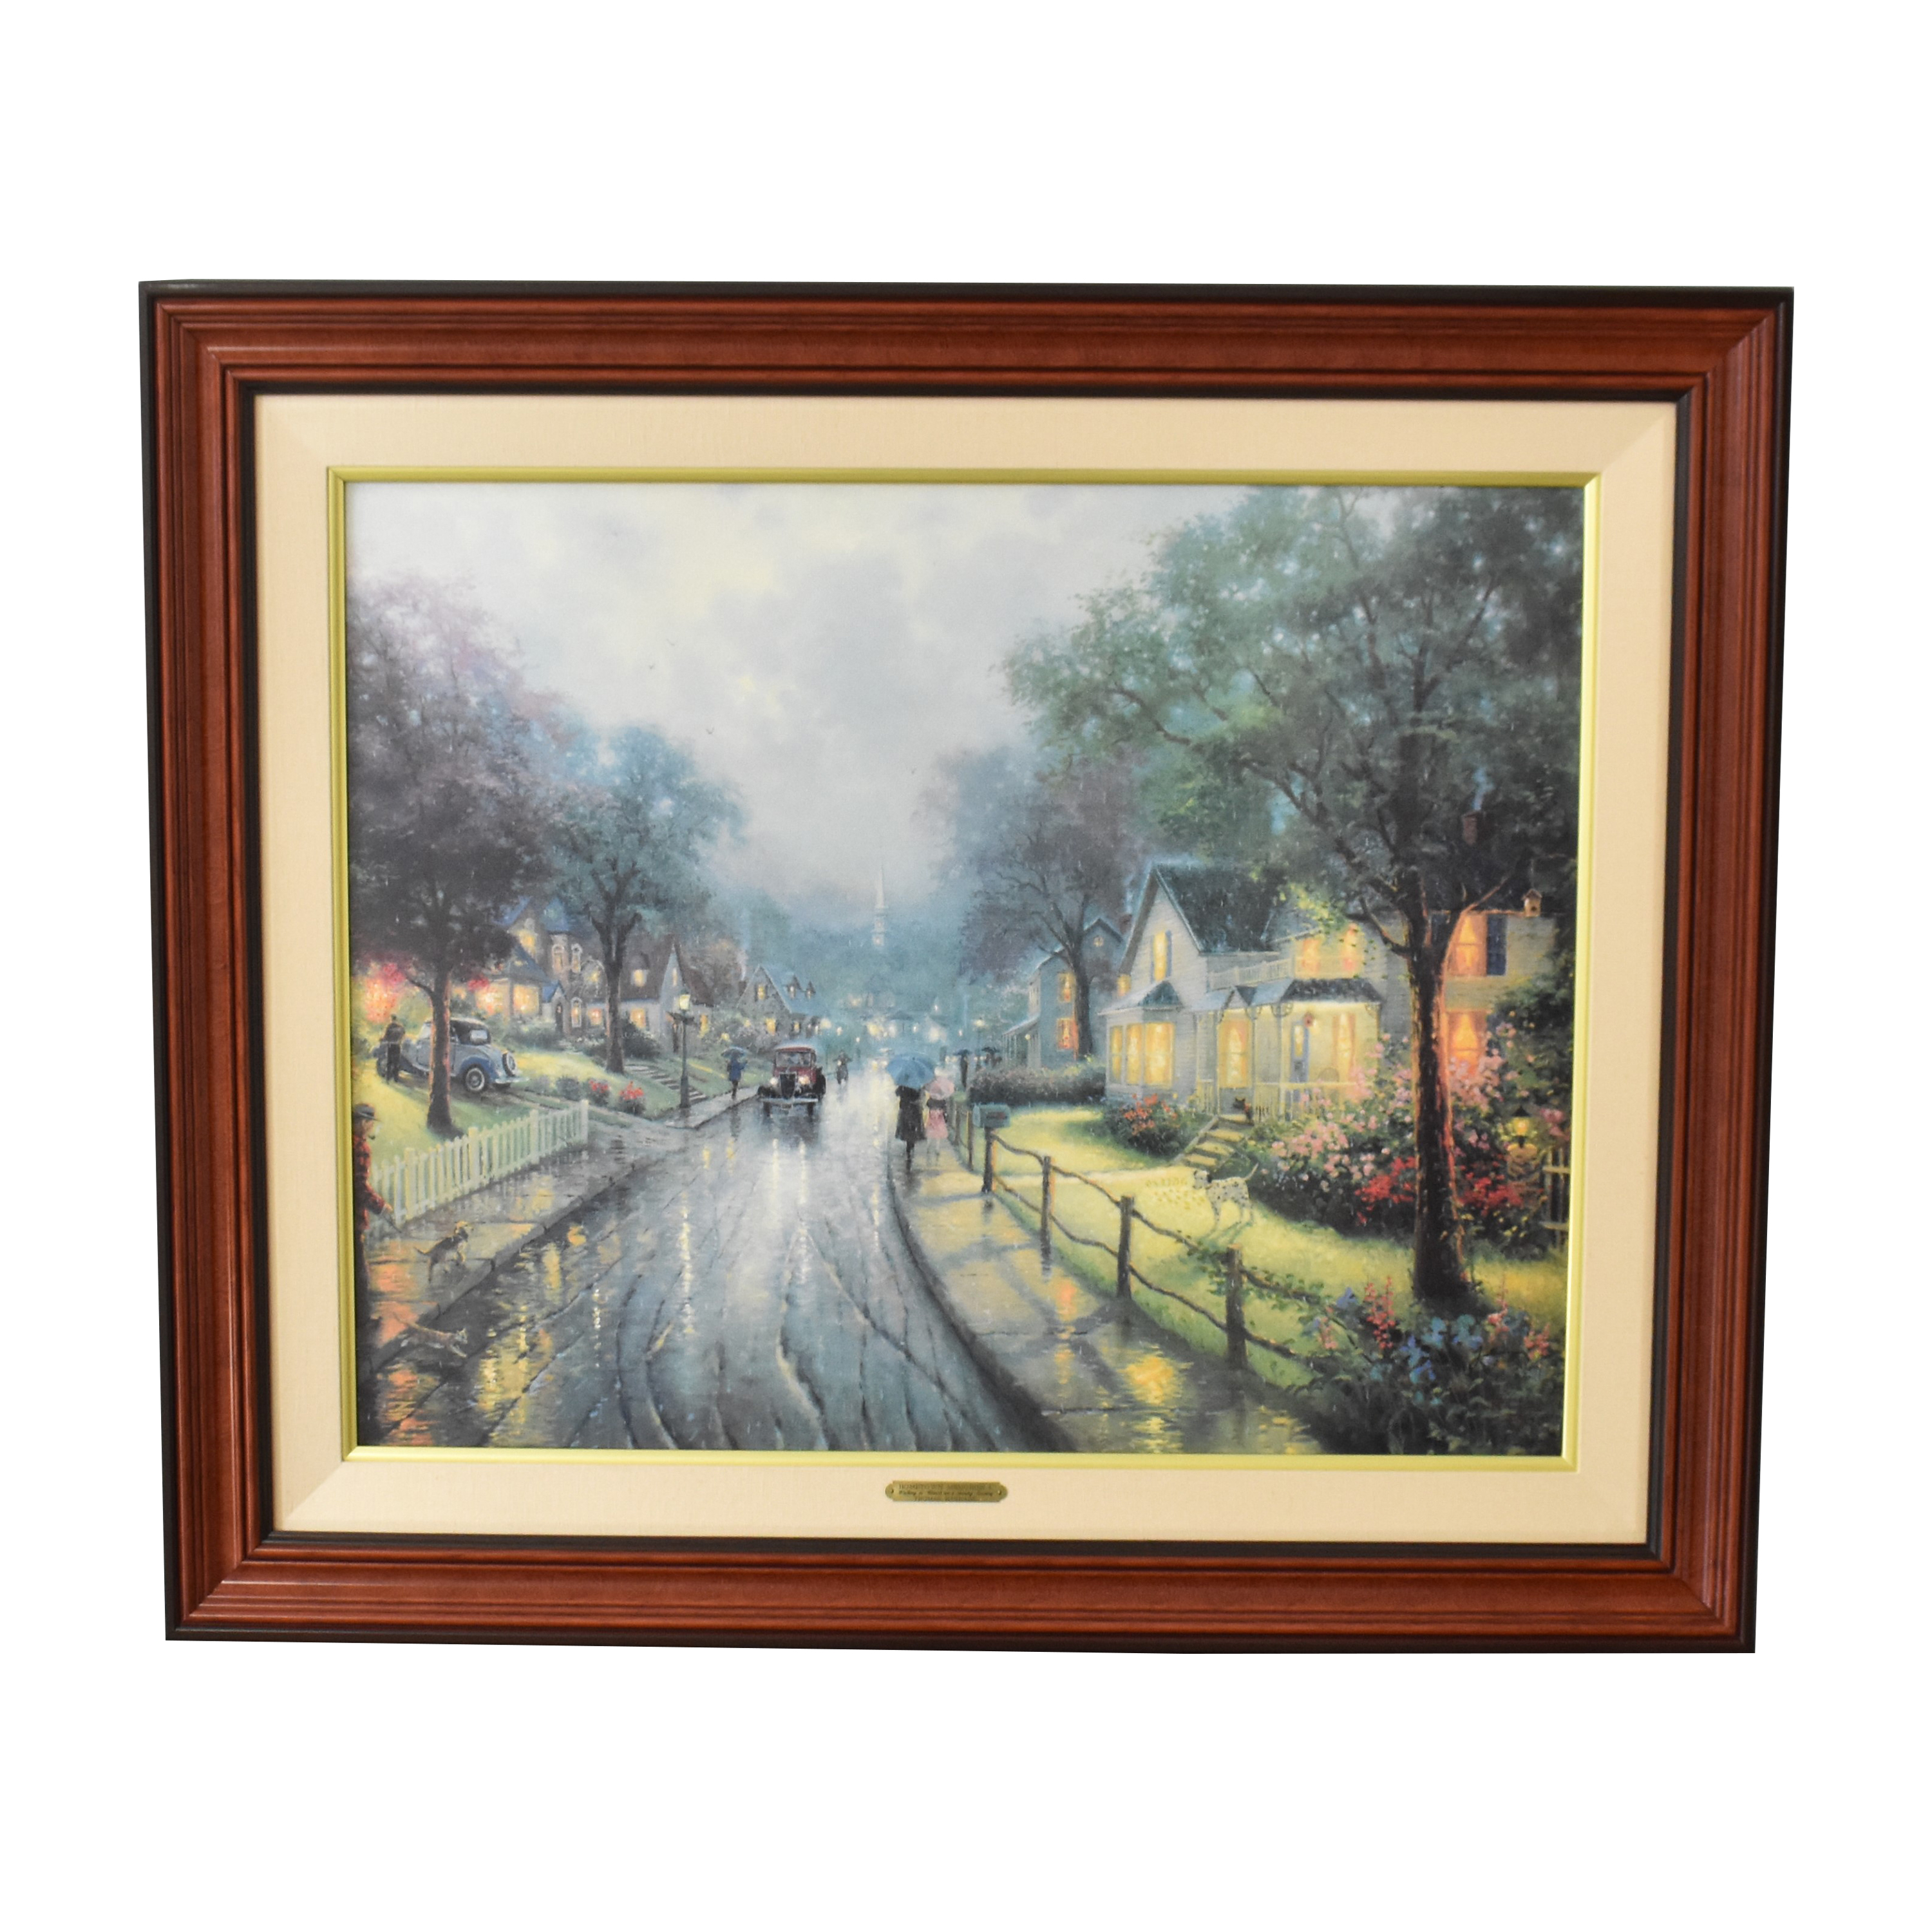 buy  Thomas Kinkade Walking To Church on a Sunday Evening Framed Print online